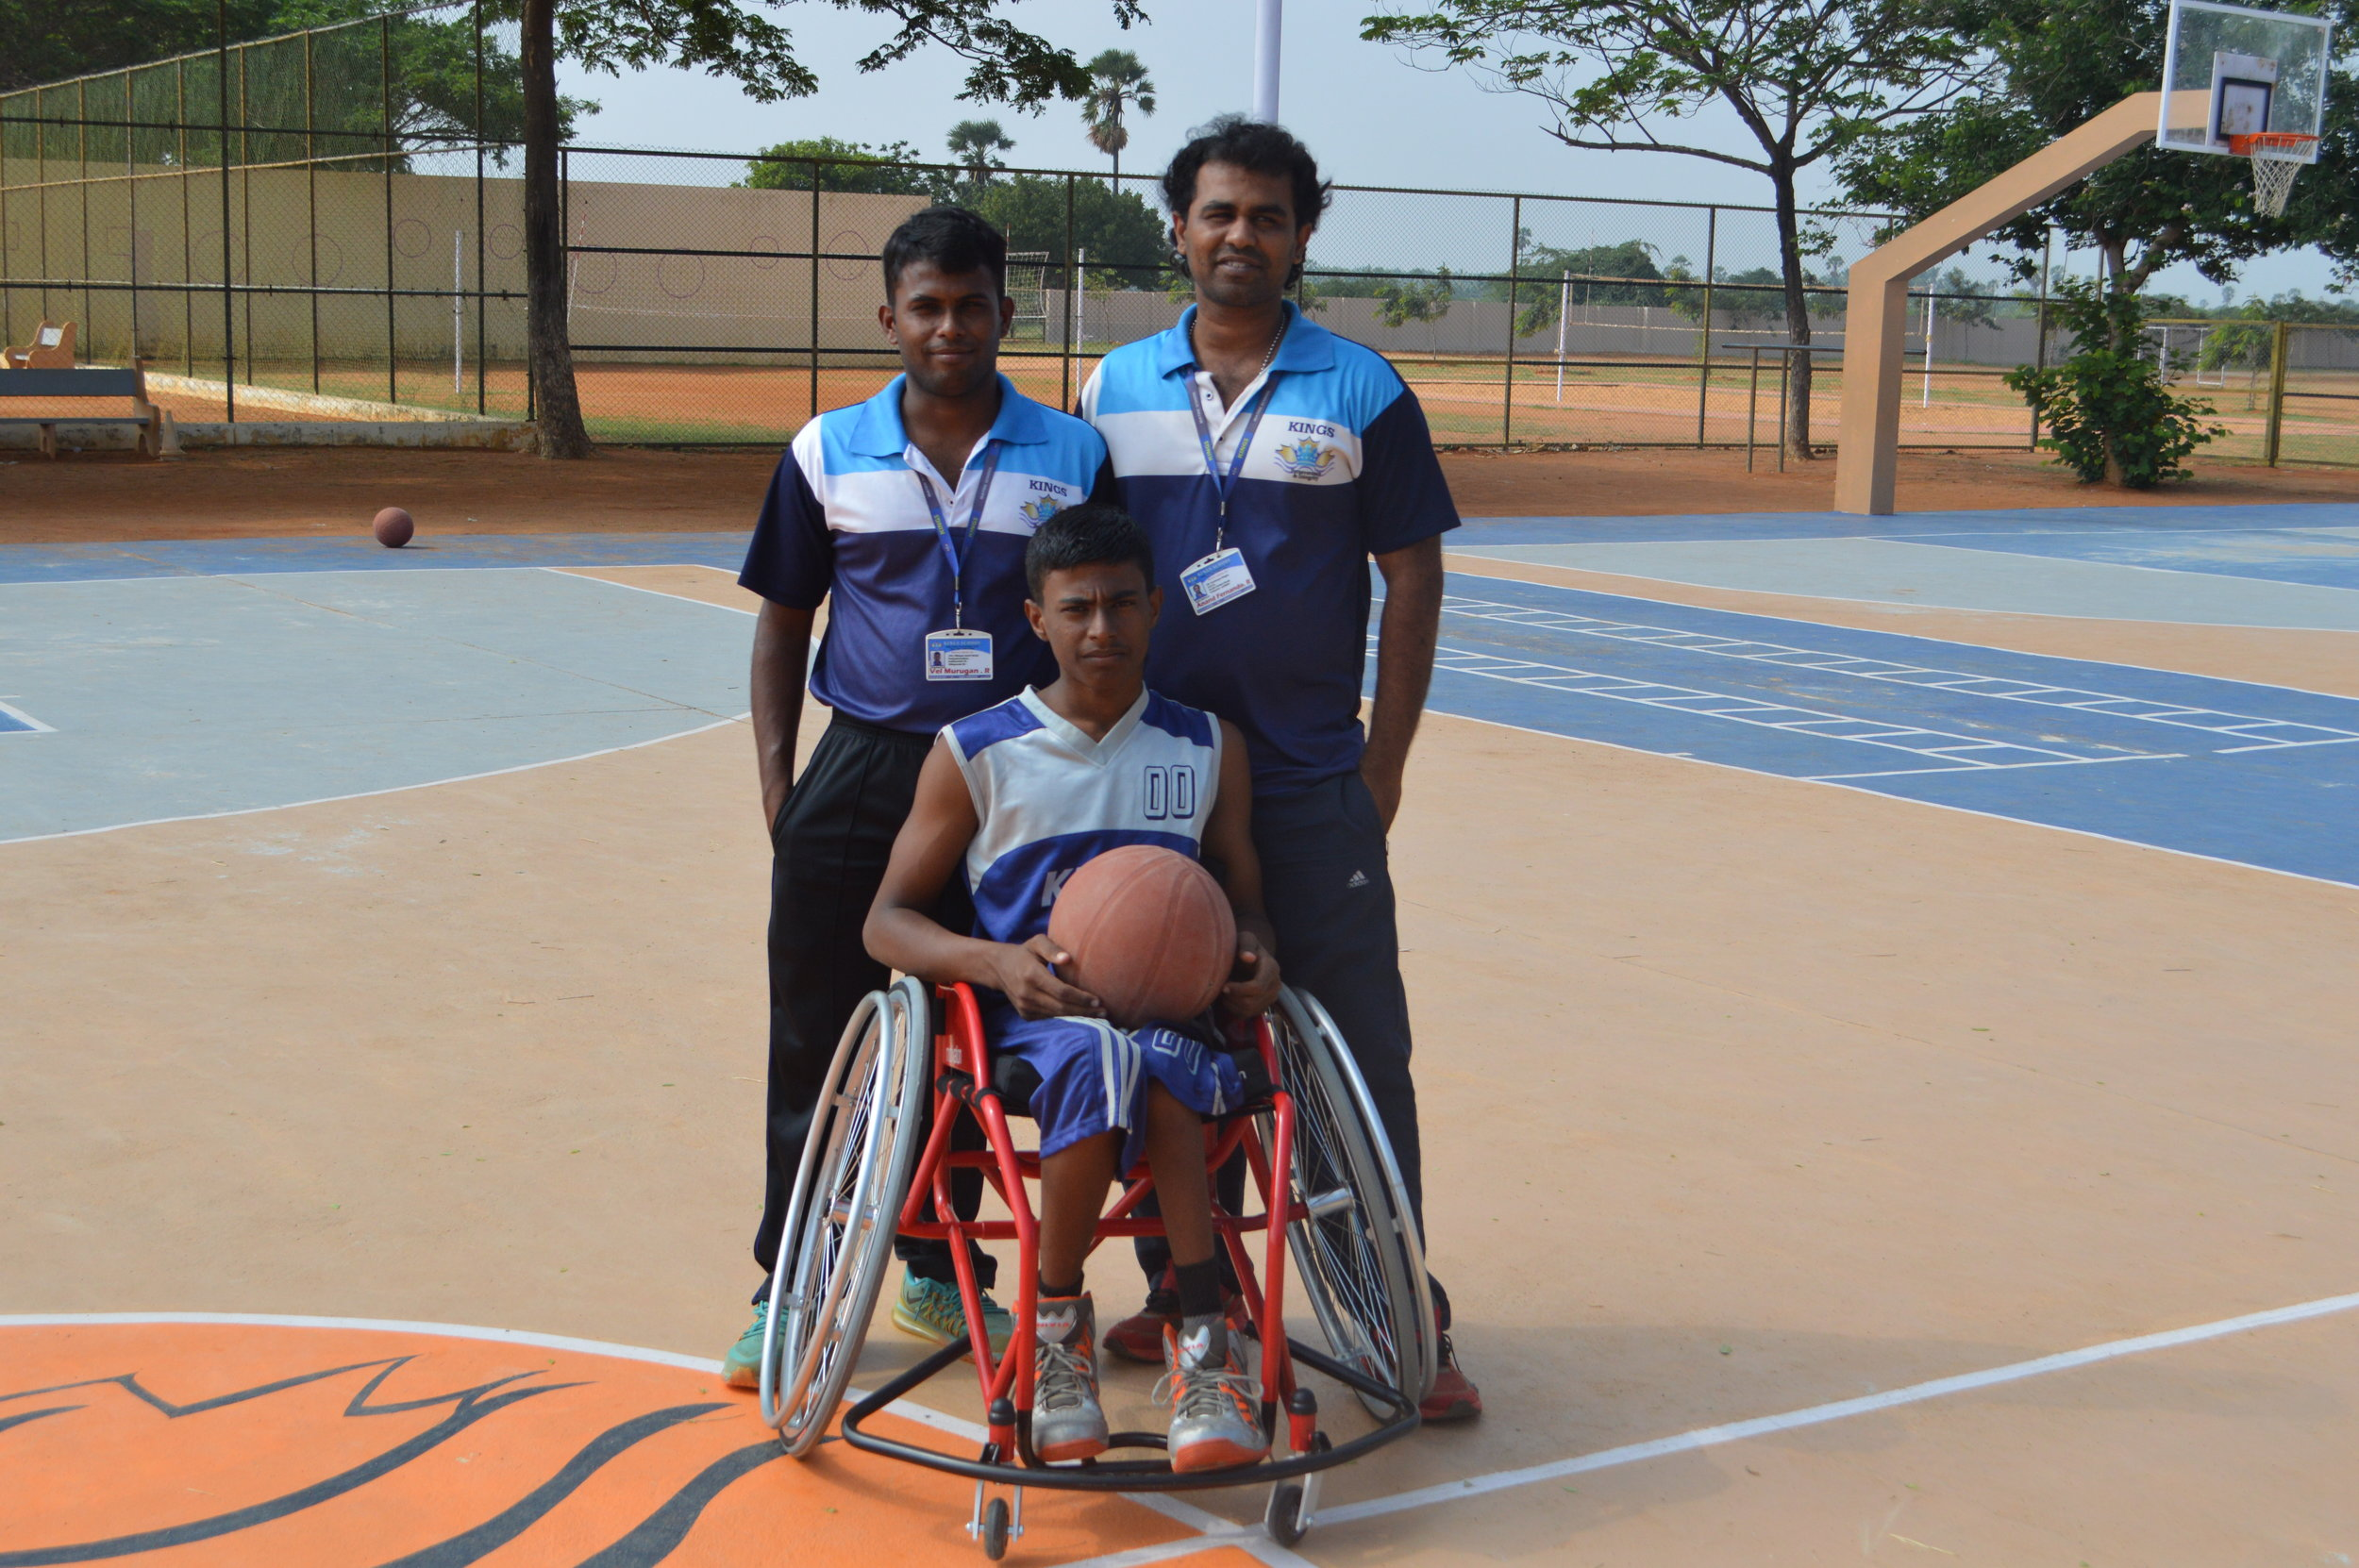 Jeya Selvan selected for the India Wheelchair Basket Ball Team